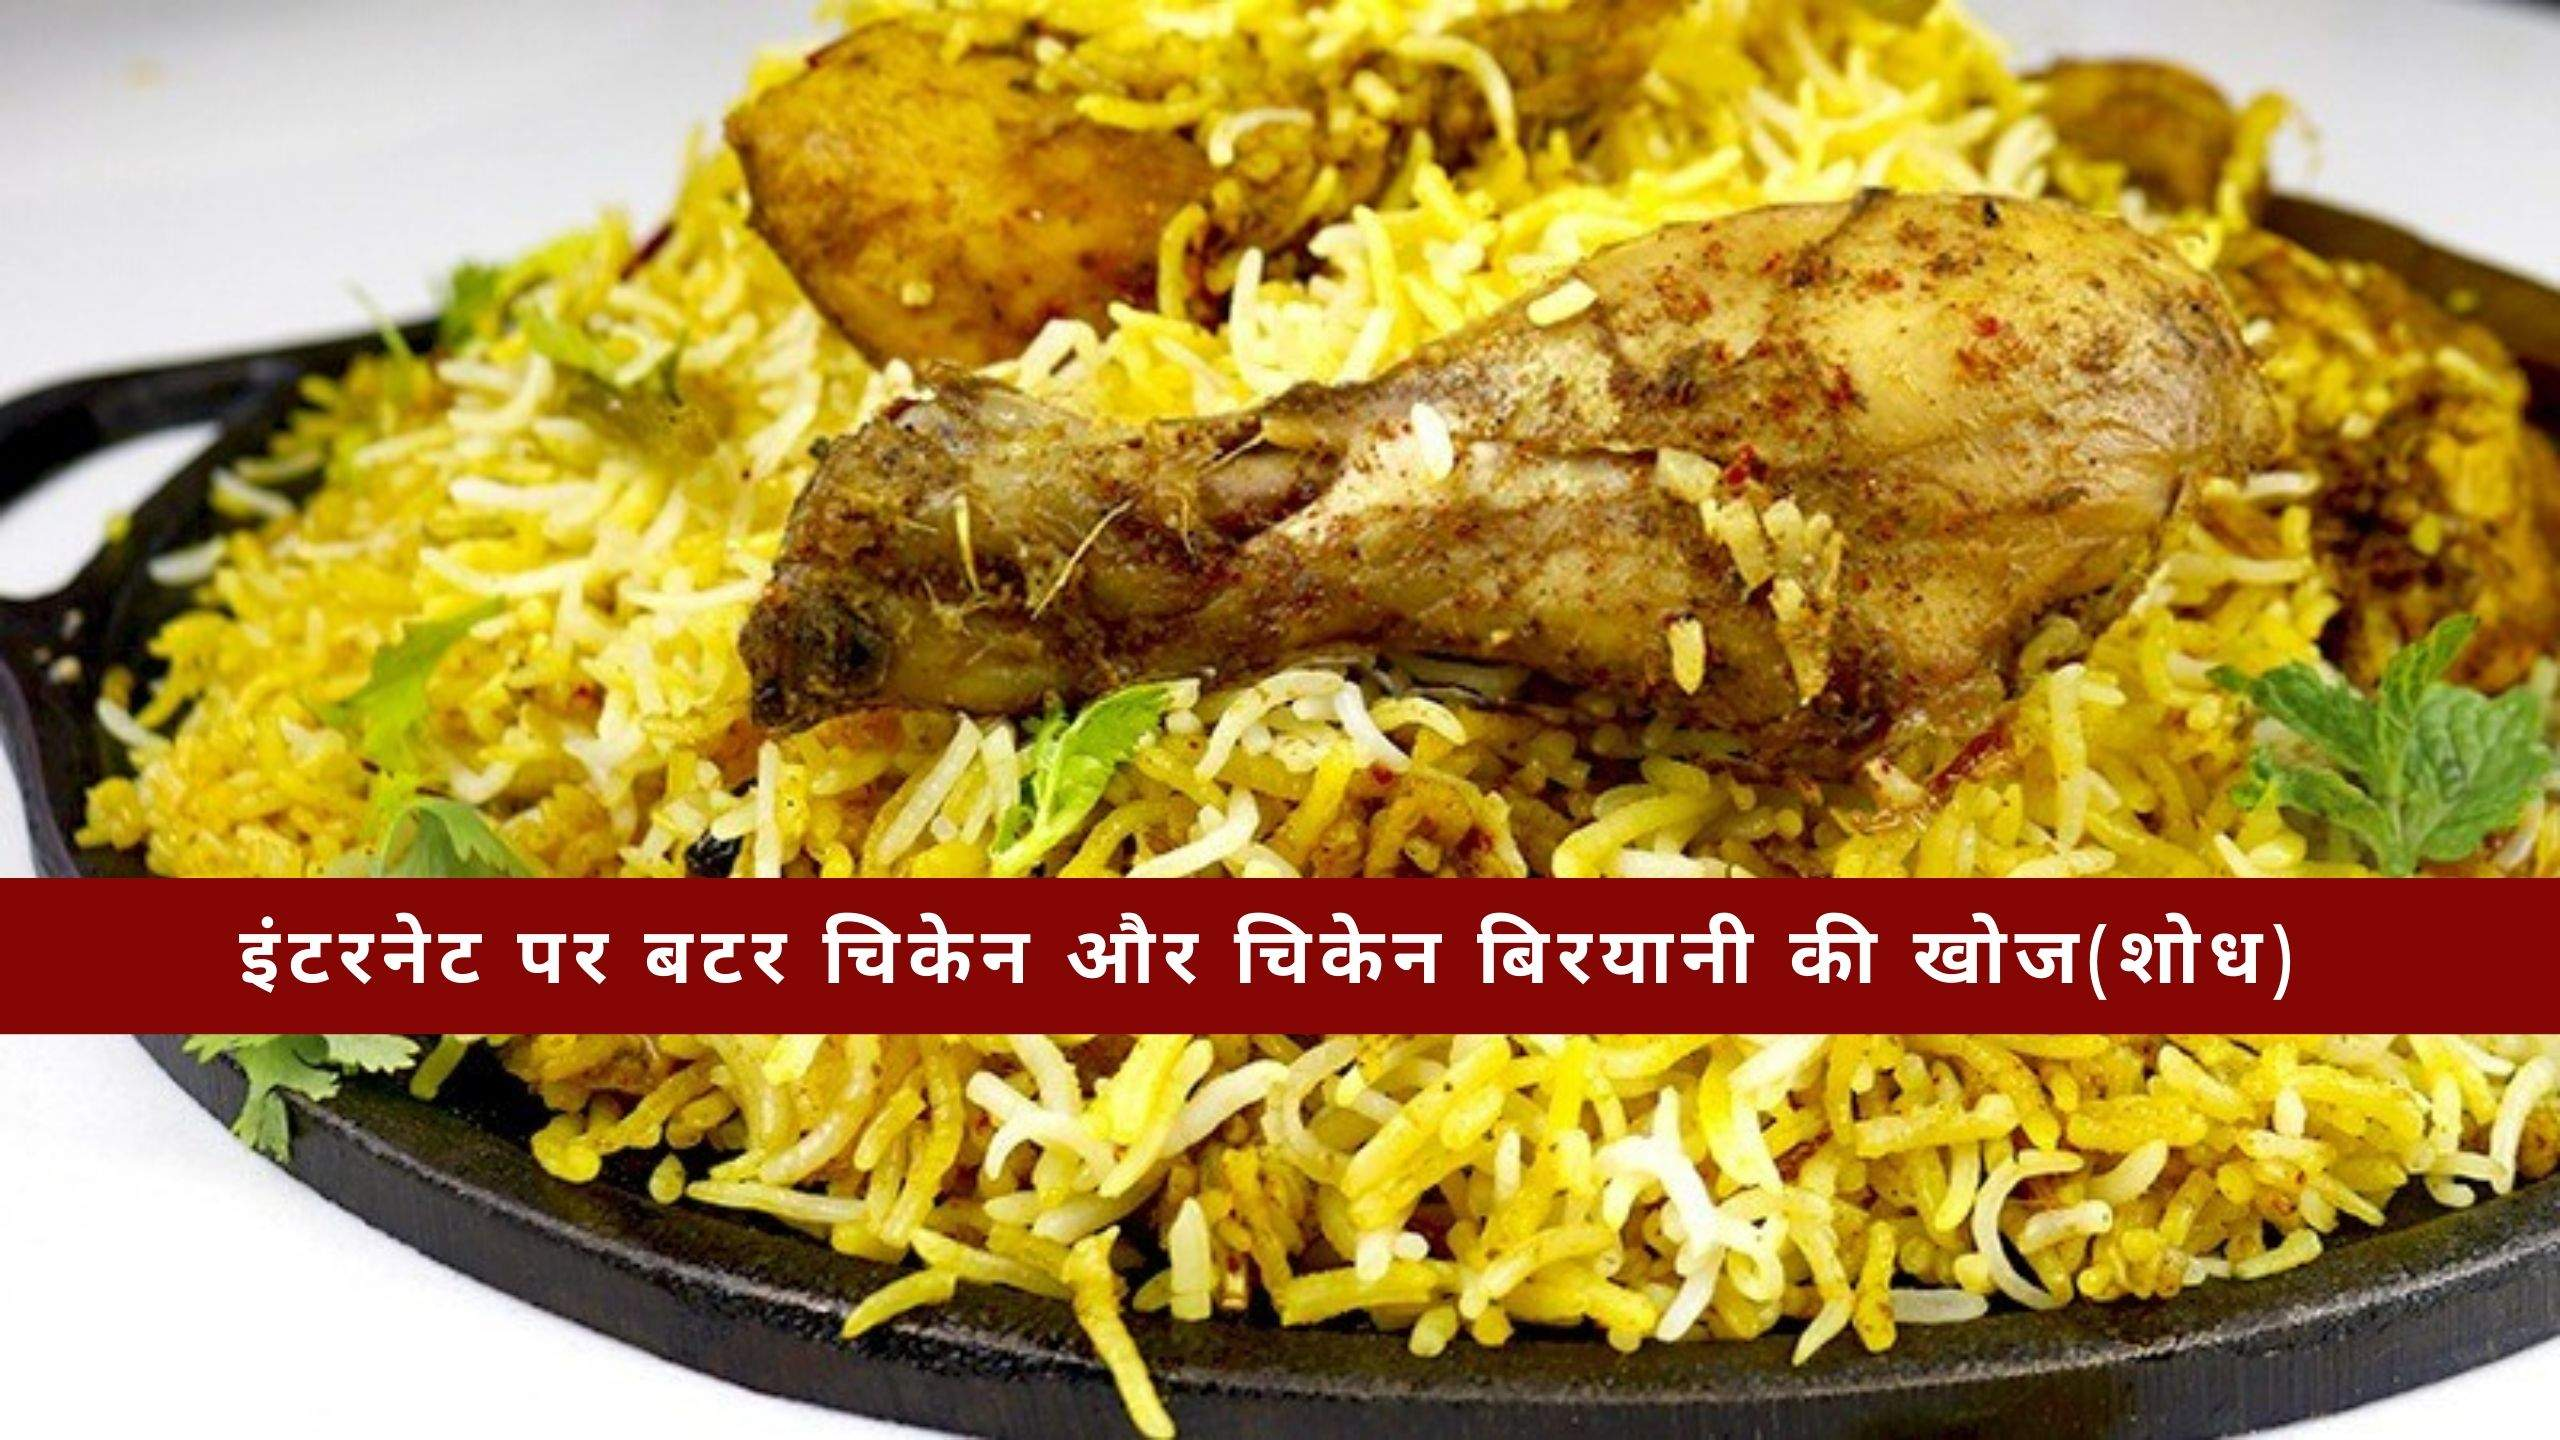 Biryani, butter chicken most searched Indian food